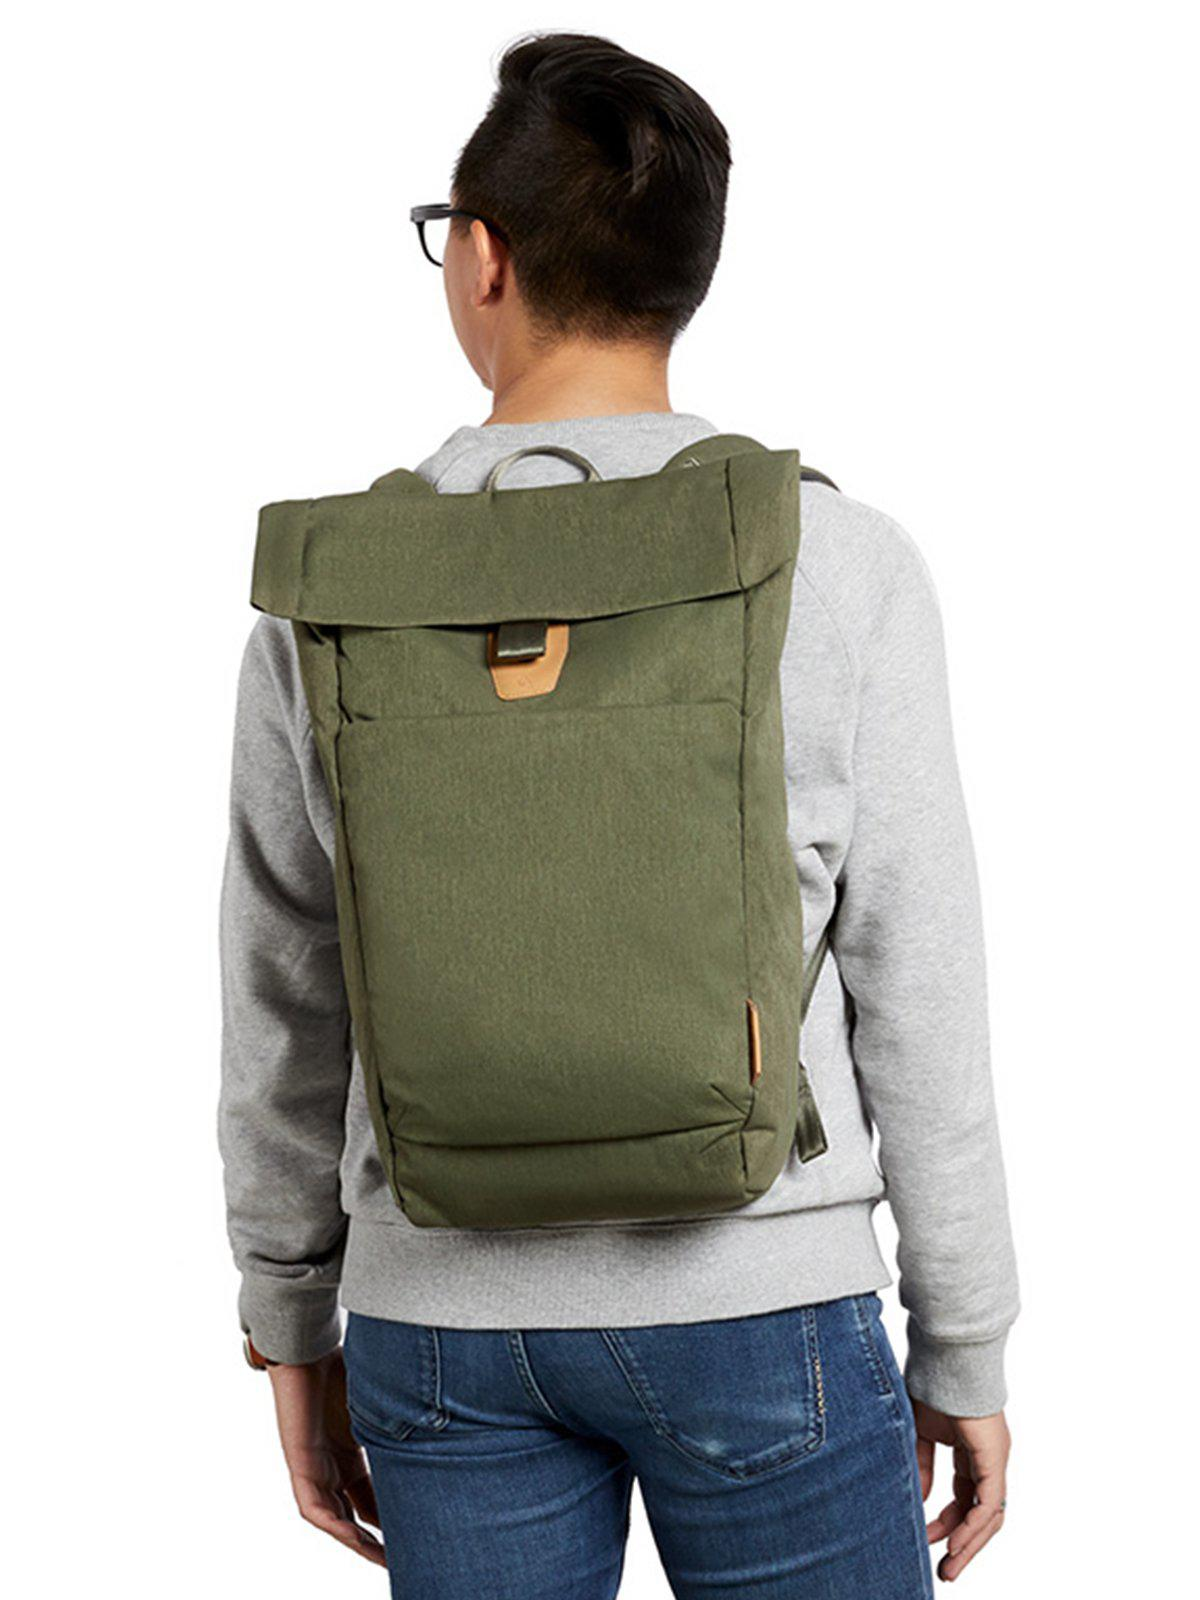 Bellroy Studio Backpack Olive - MORE by Morello Indonesia